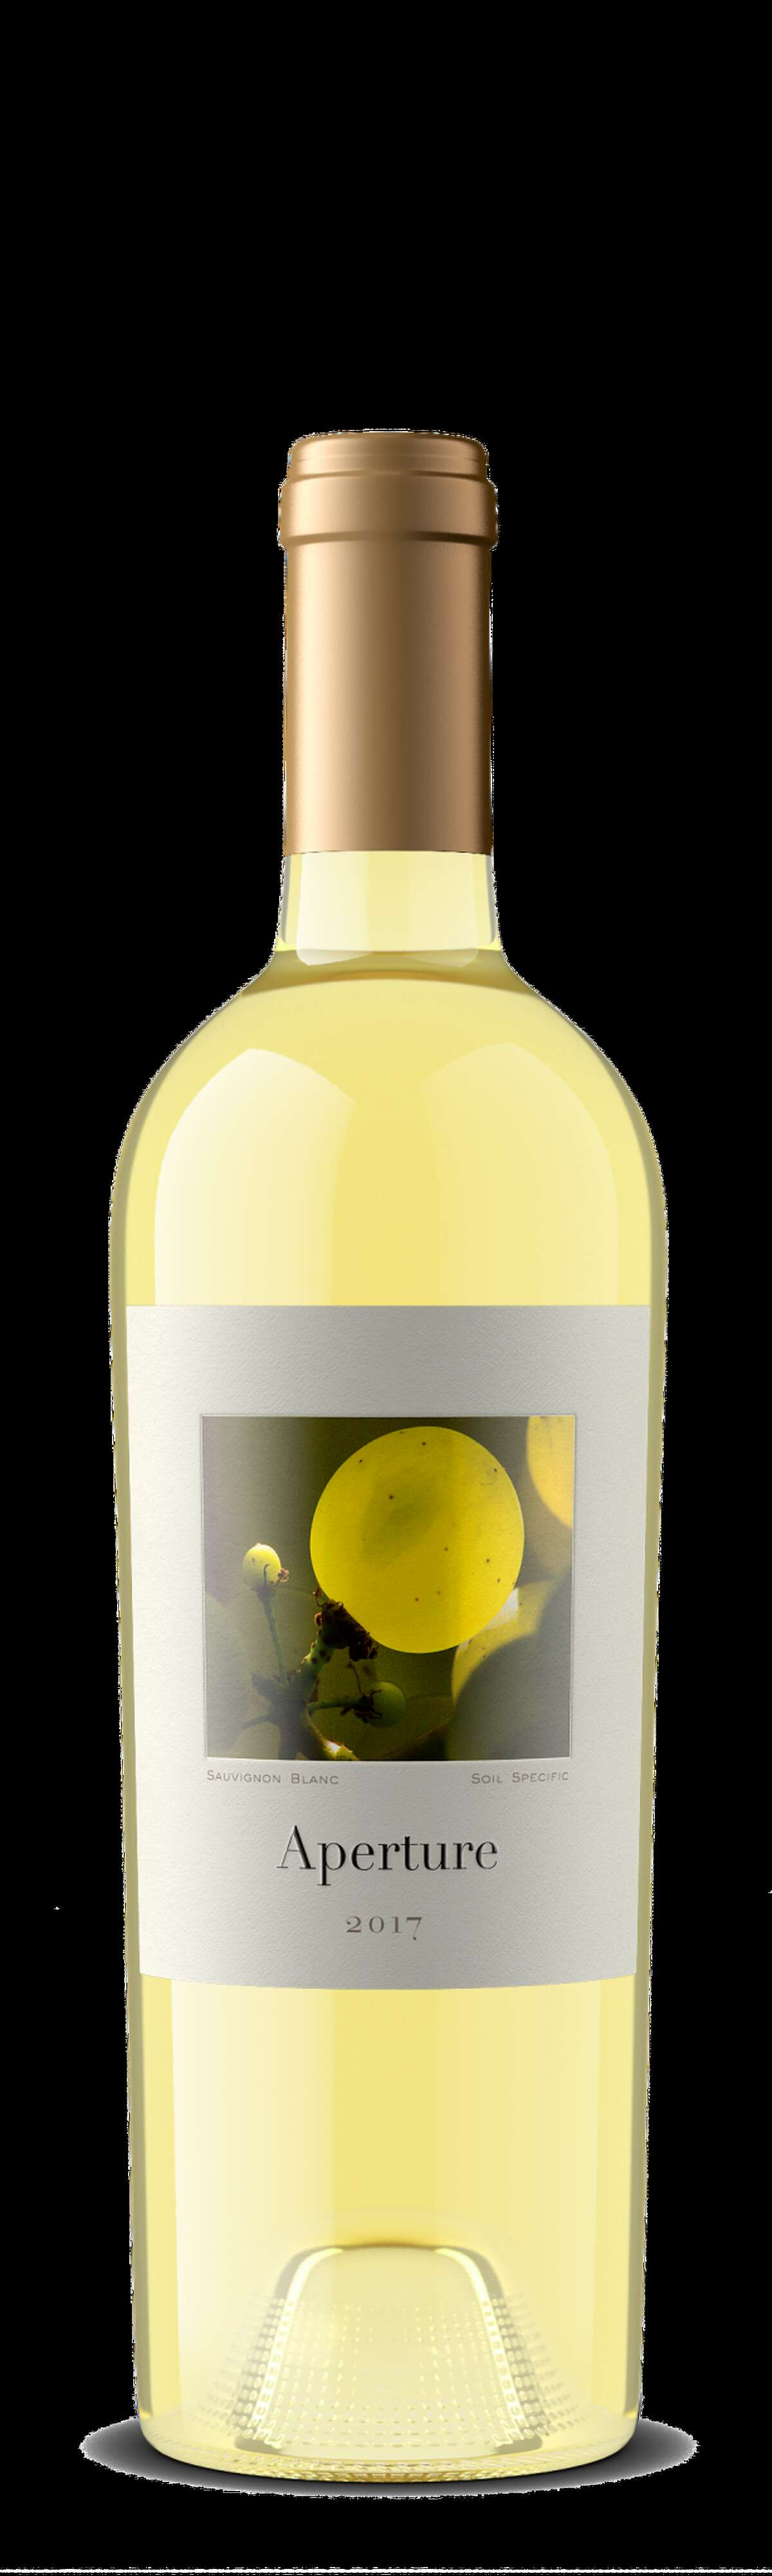 Aperture Crane's venture into the food and beverage business includes Aperture, a winery in California. Pictured: Aperture Sauvignon Blanc.